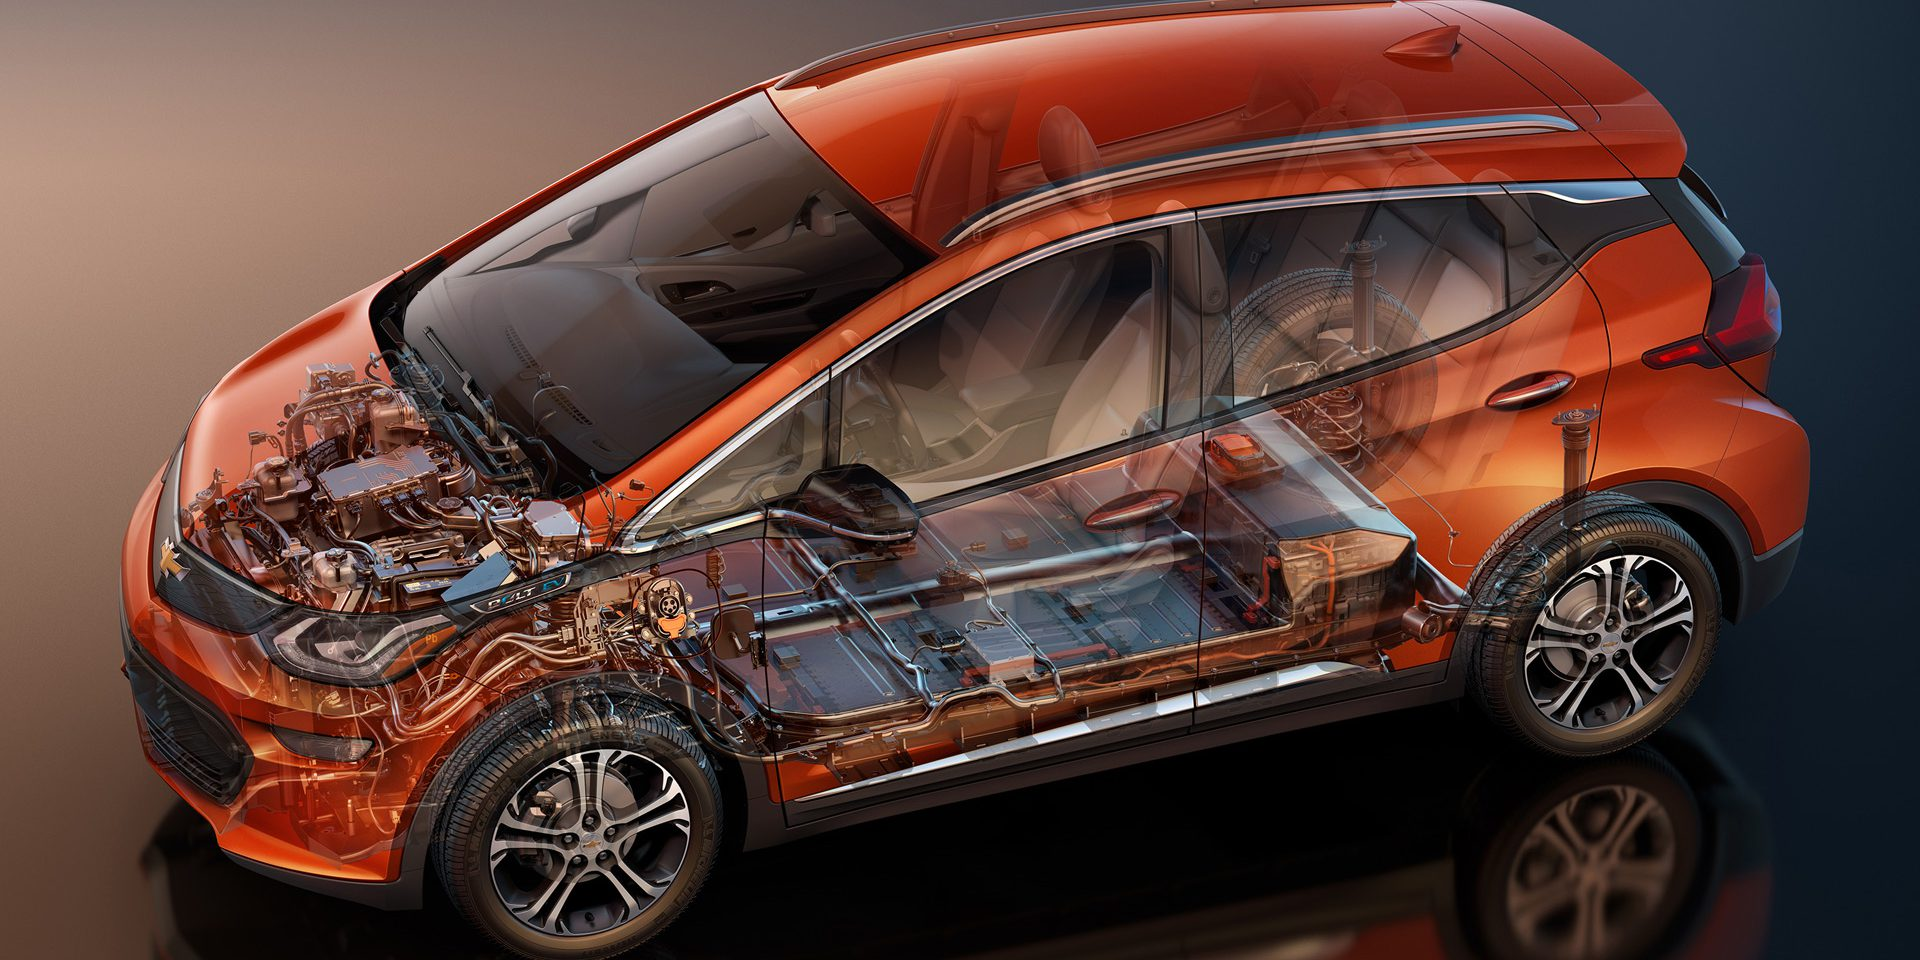 Gm Will Launch Several New Electric Vehicles Using The Chevy Bolt Ev Platform